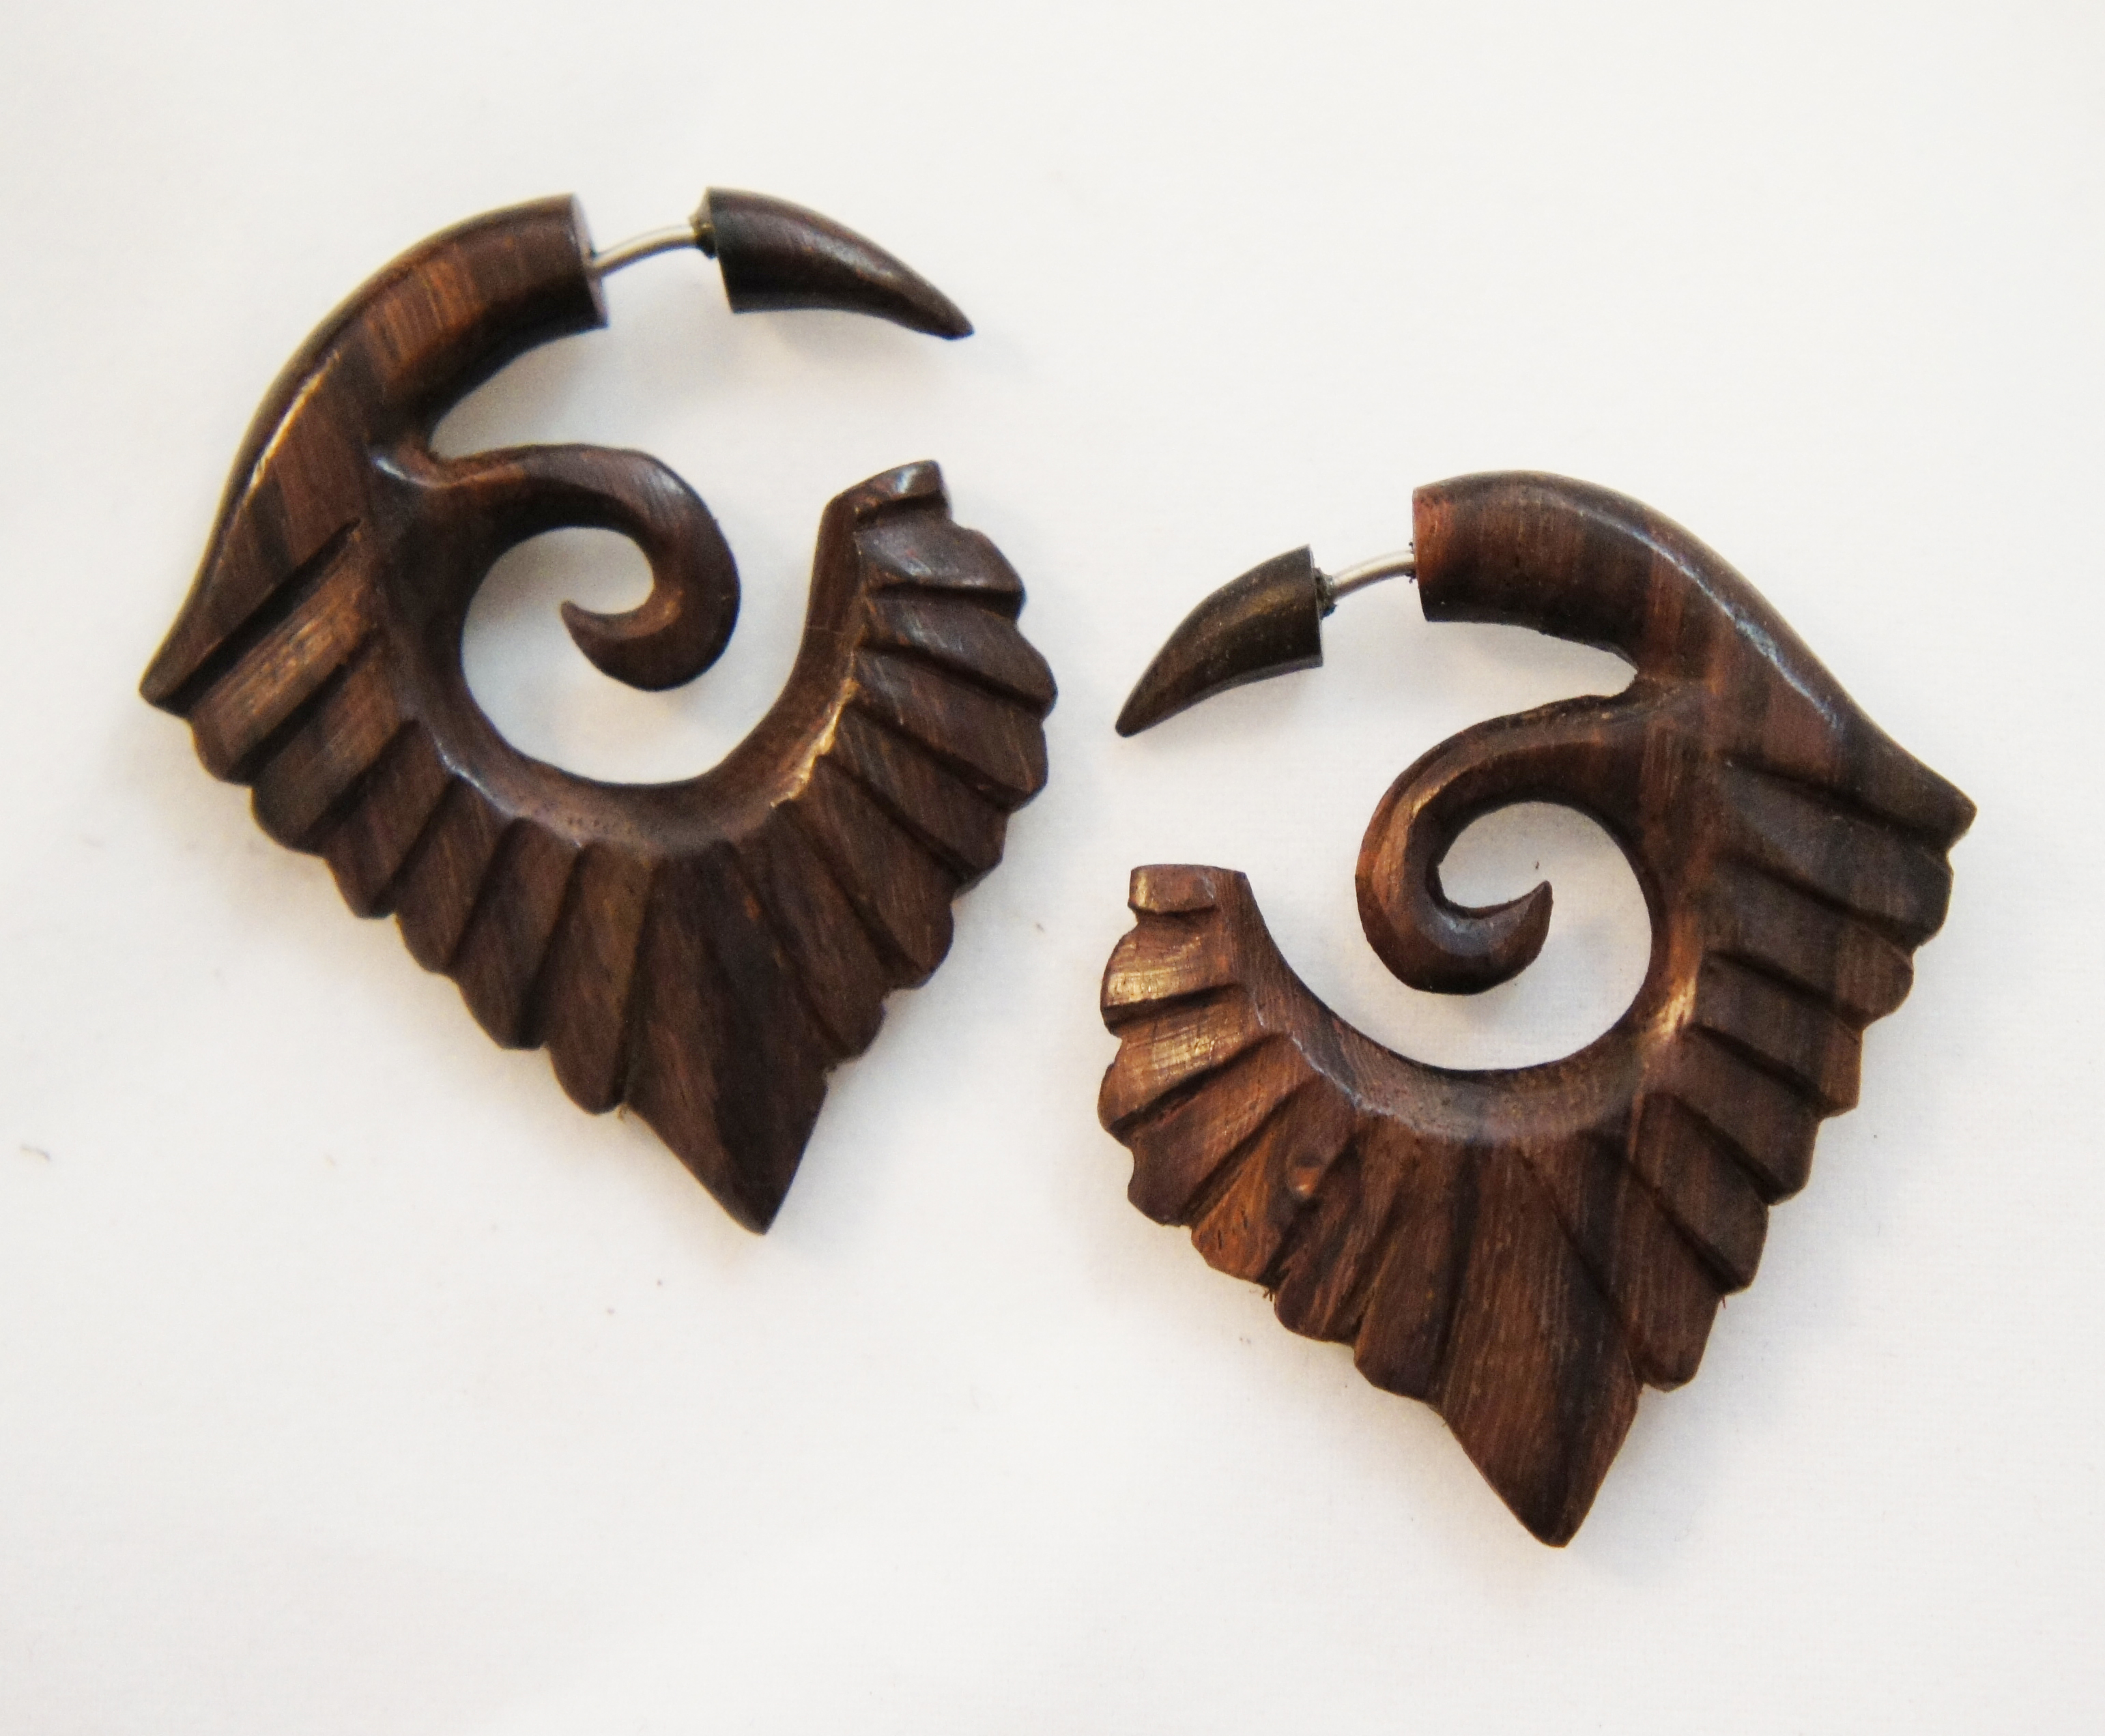 Curled Wood Illusion Hanger with Spiral